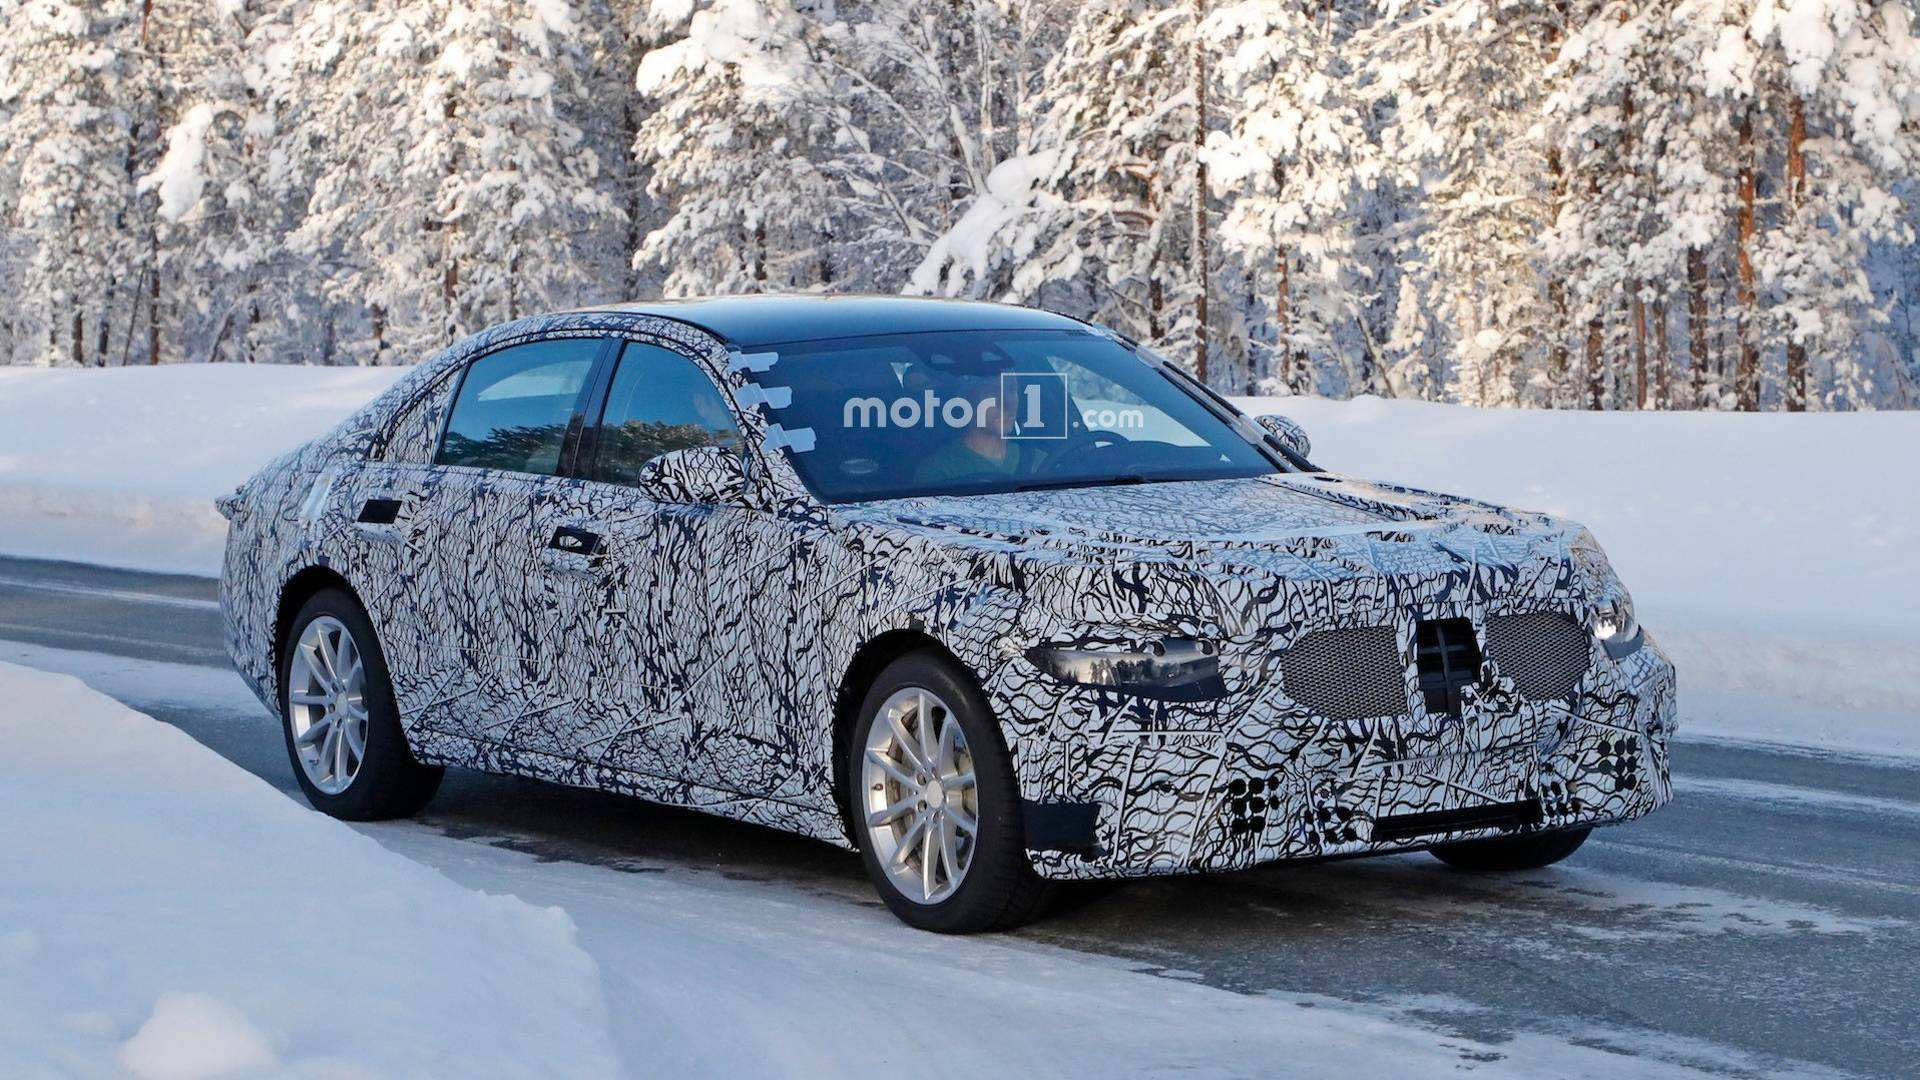 78 All New 2020 The Spy Shots Mercedes E Class Prices